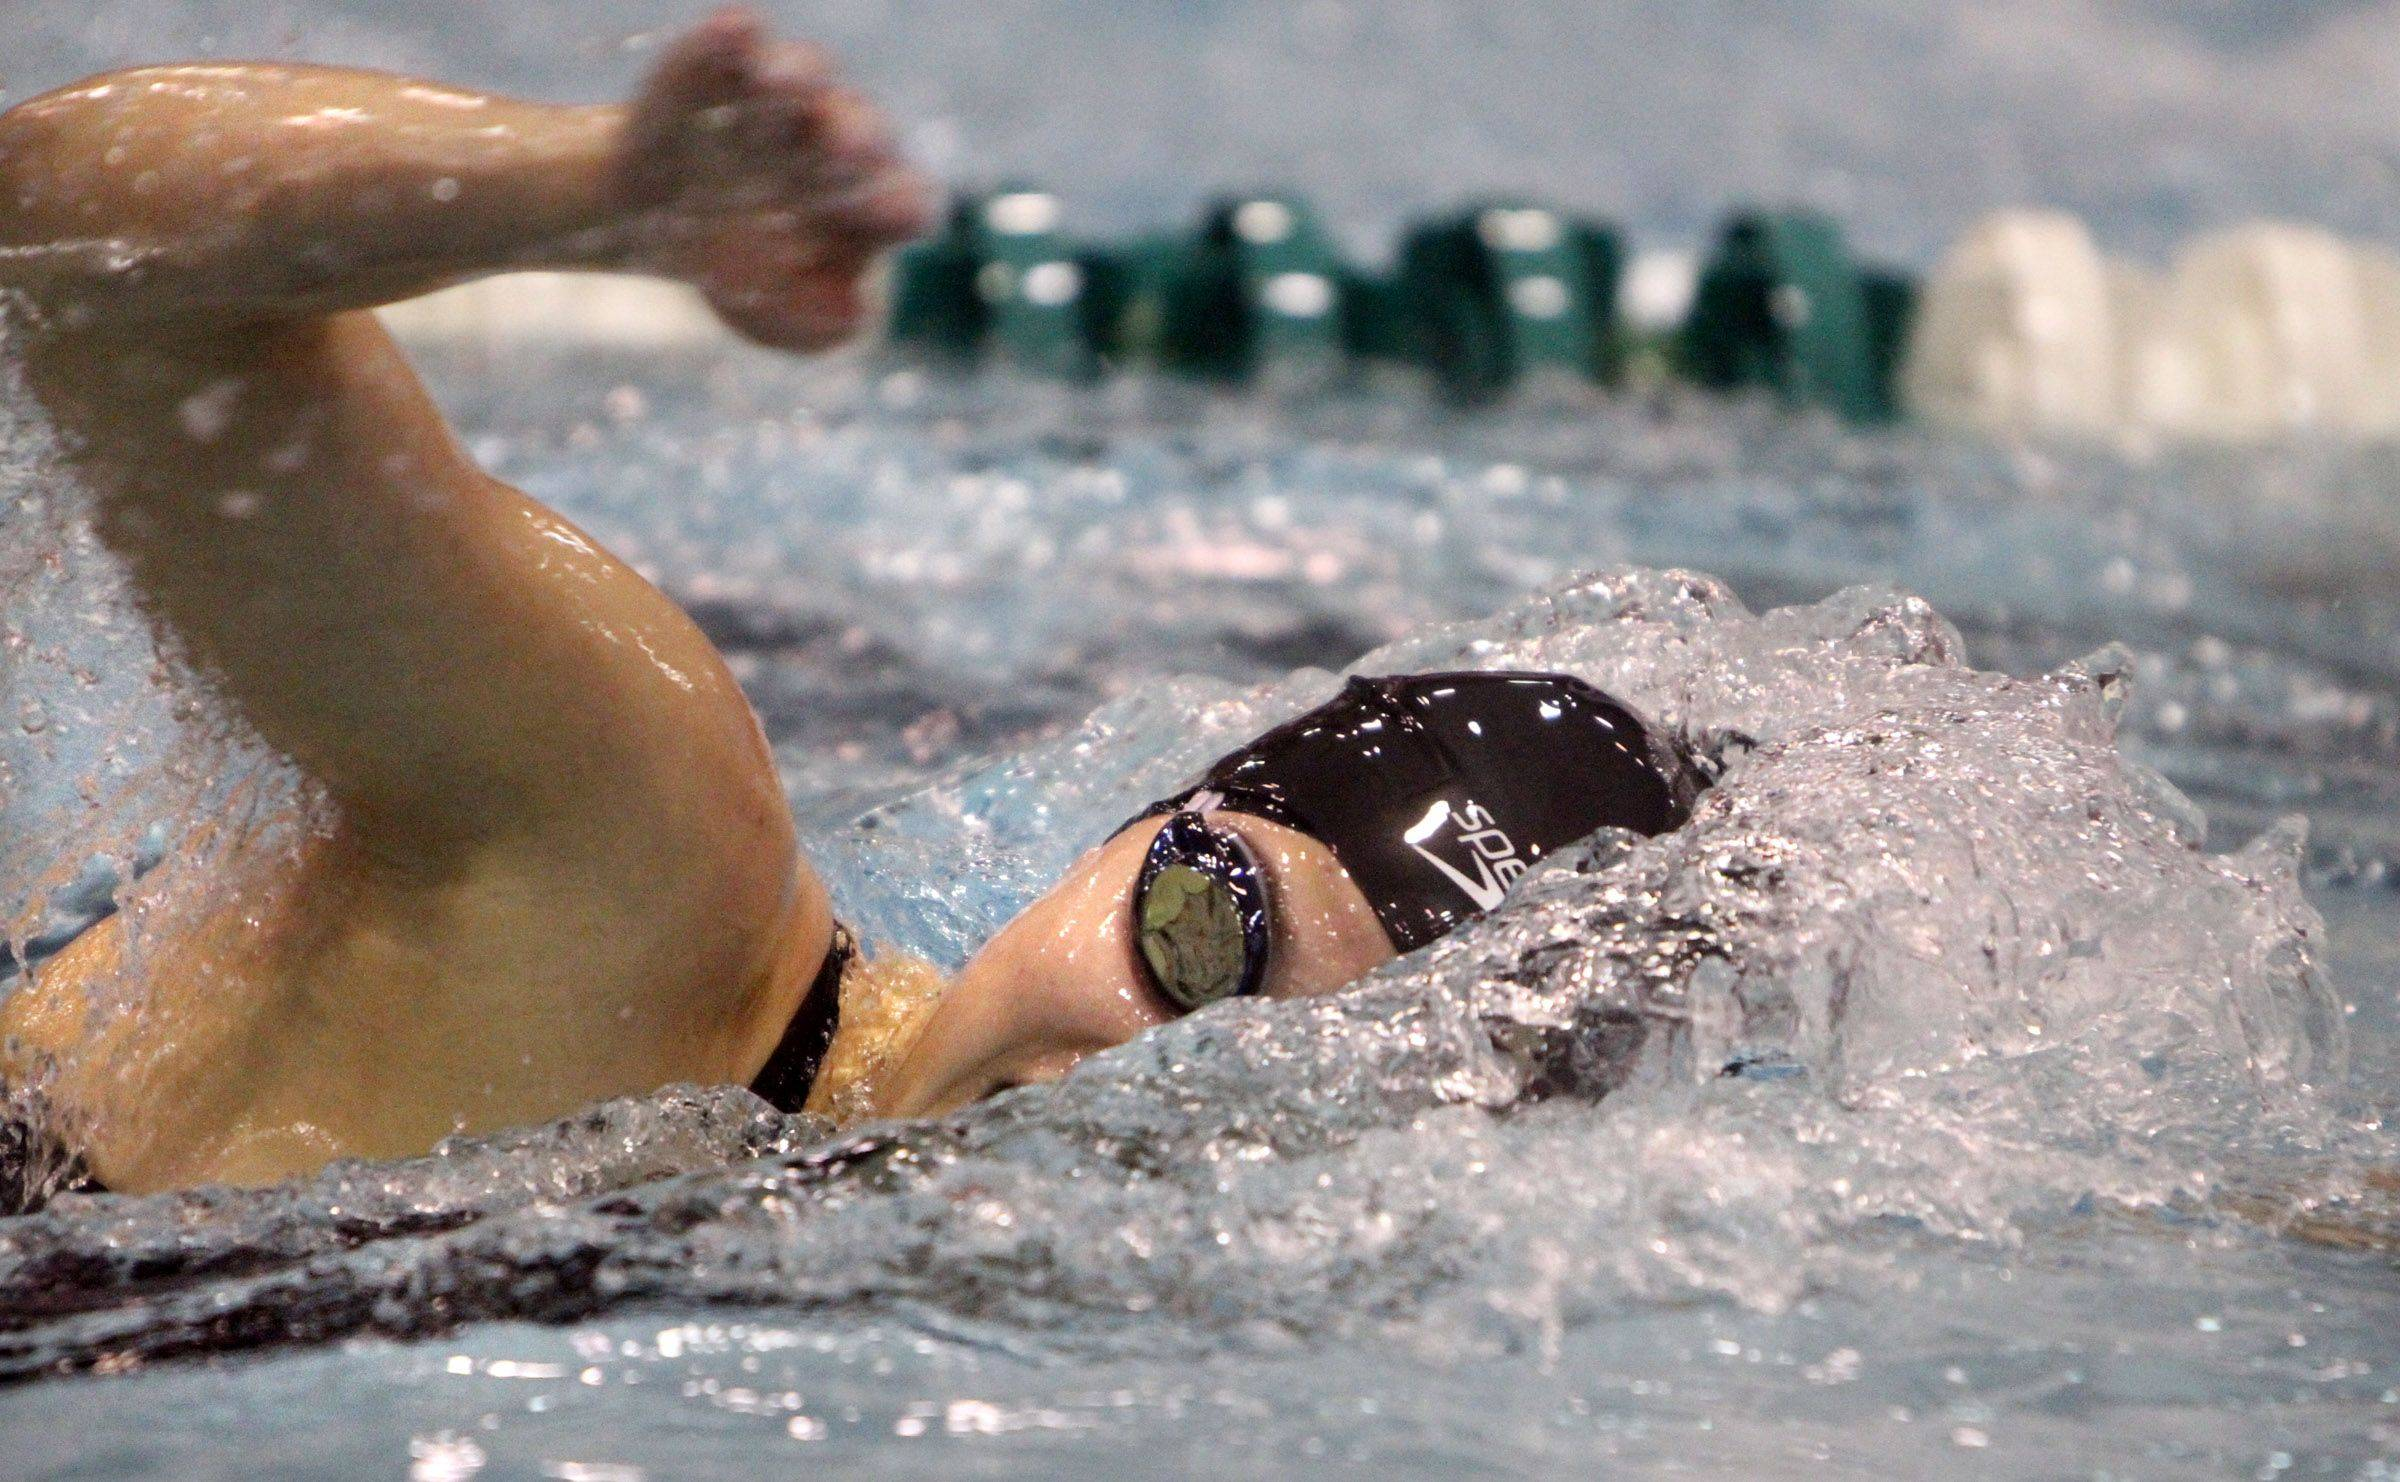 Libertyville's Morgan Dickson placed sixth in the 500-yard freestyle at the IHSA state championships in Winnetka on Saturday, November 19th.